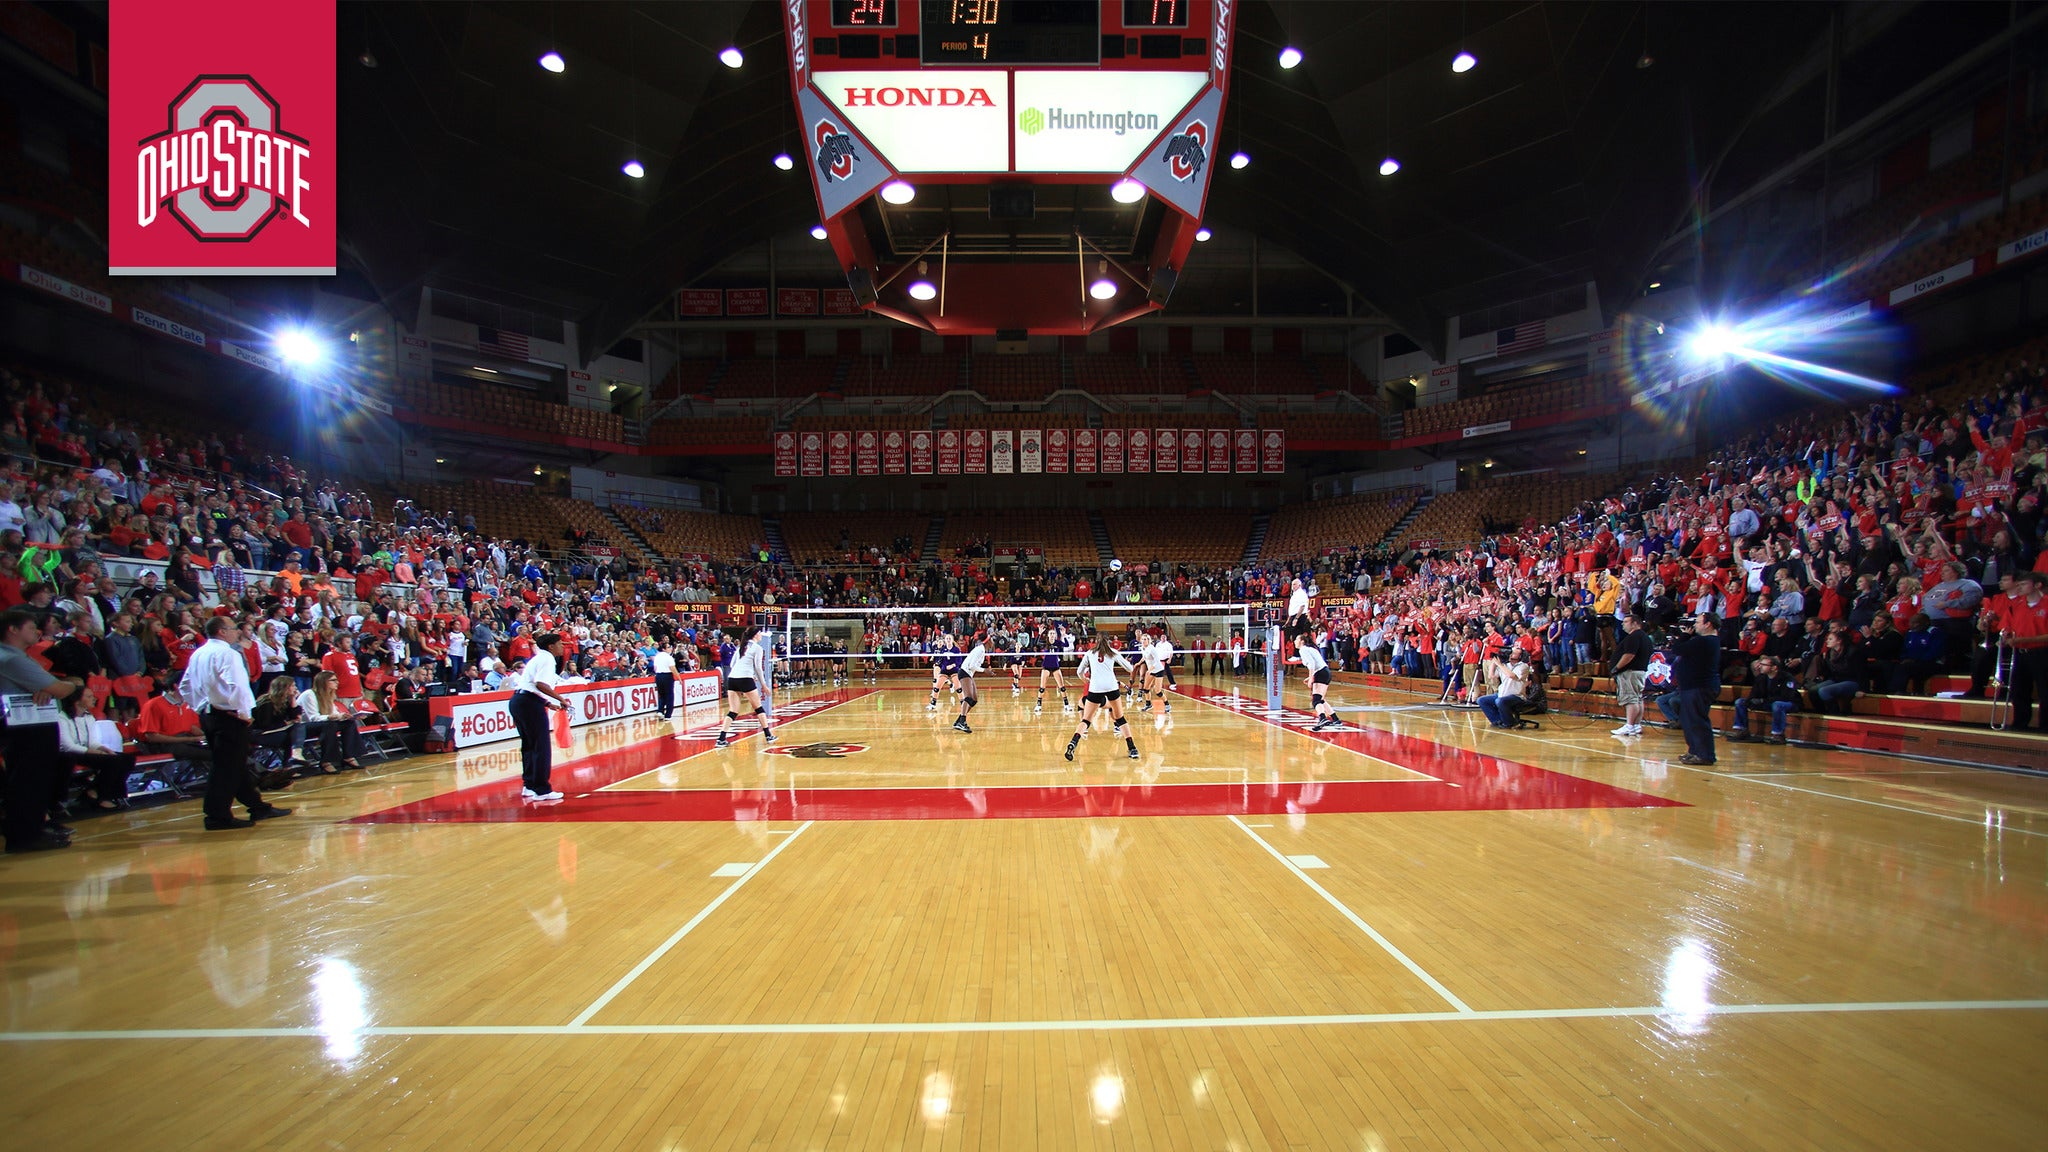 Ohio State Buckeyes Womens Volleyball vs. Purdue Boilermakers Womens Volleyball